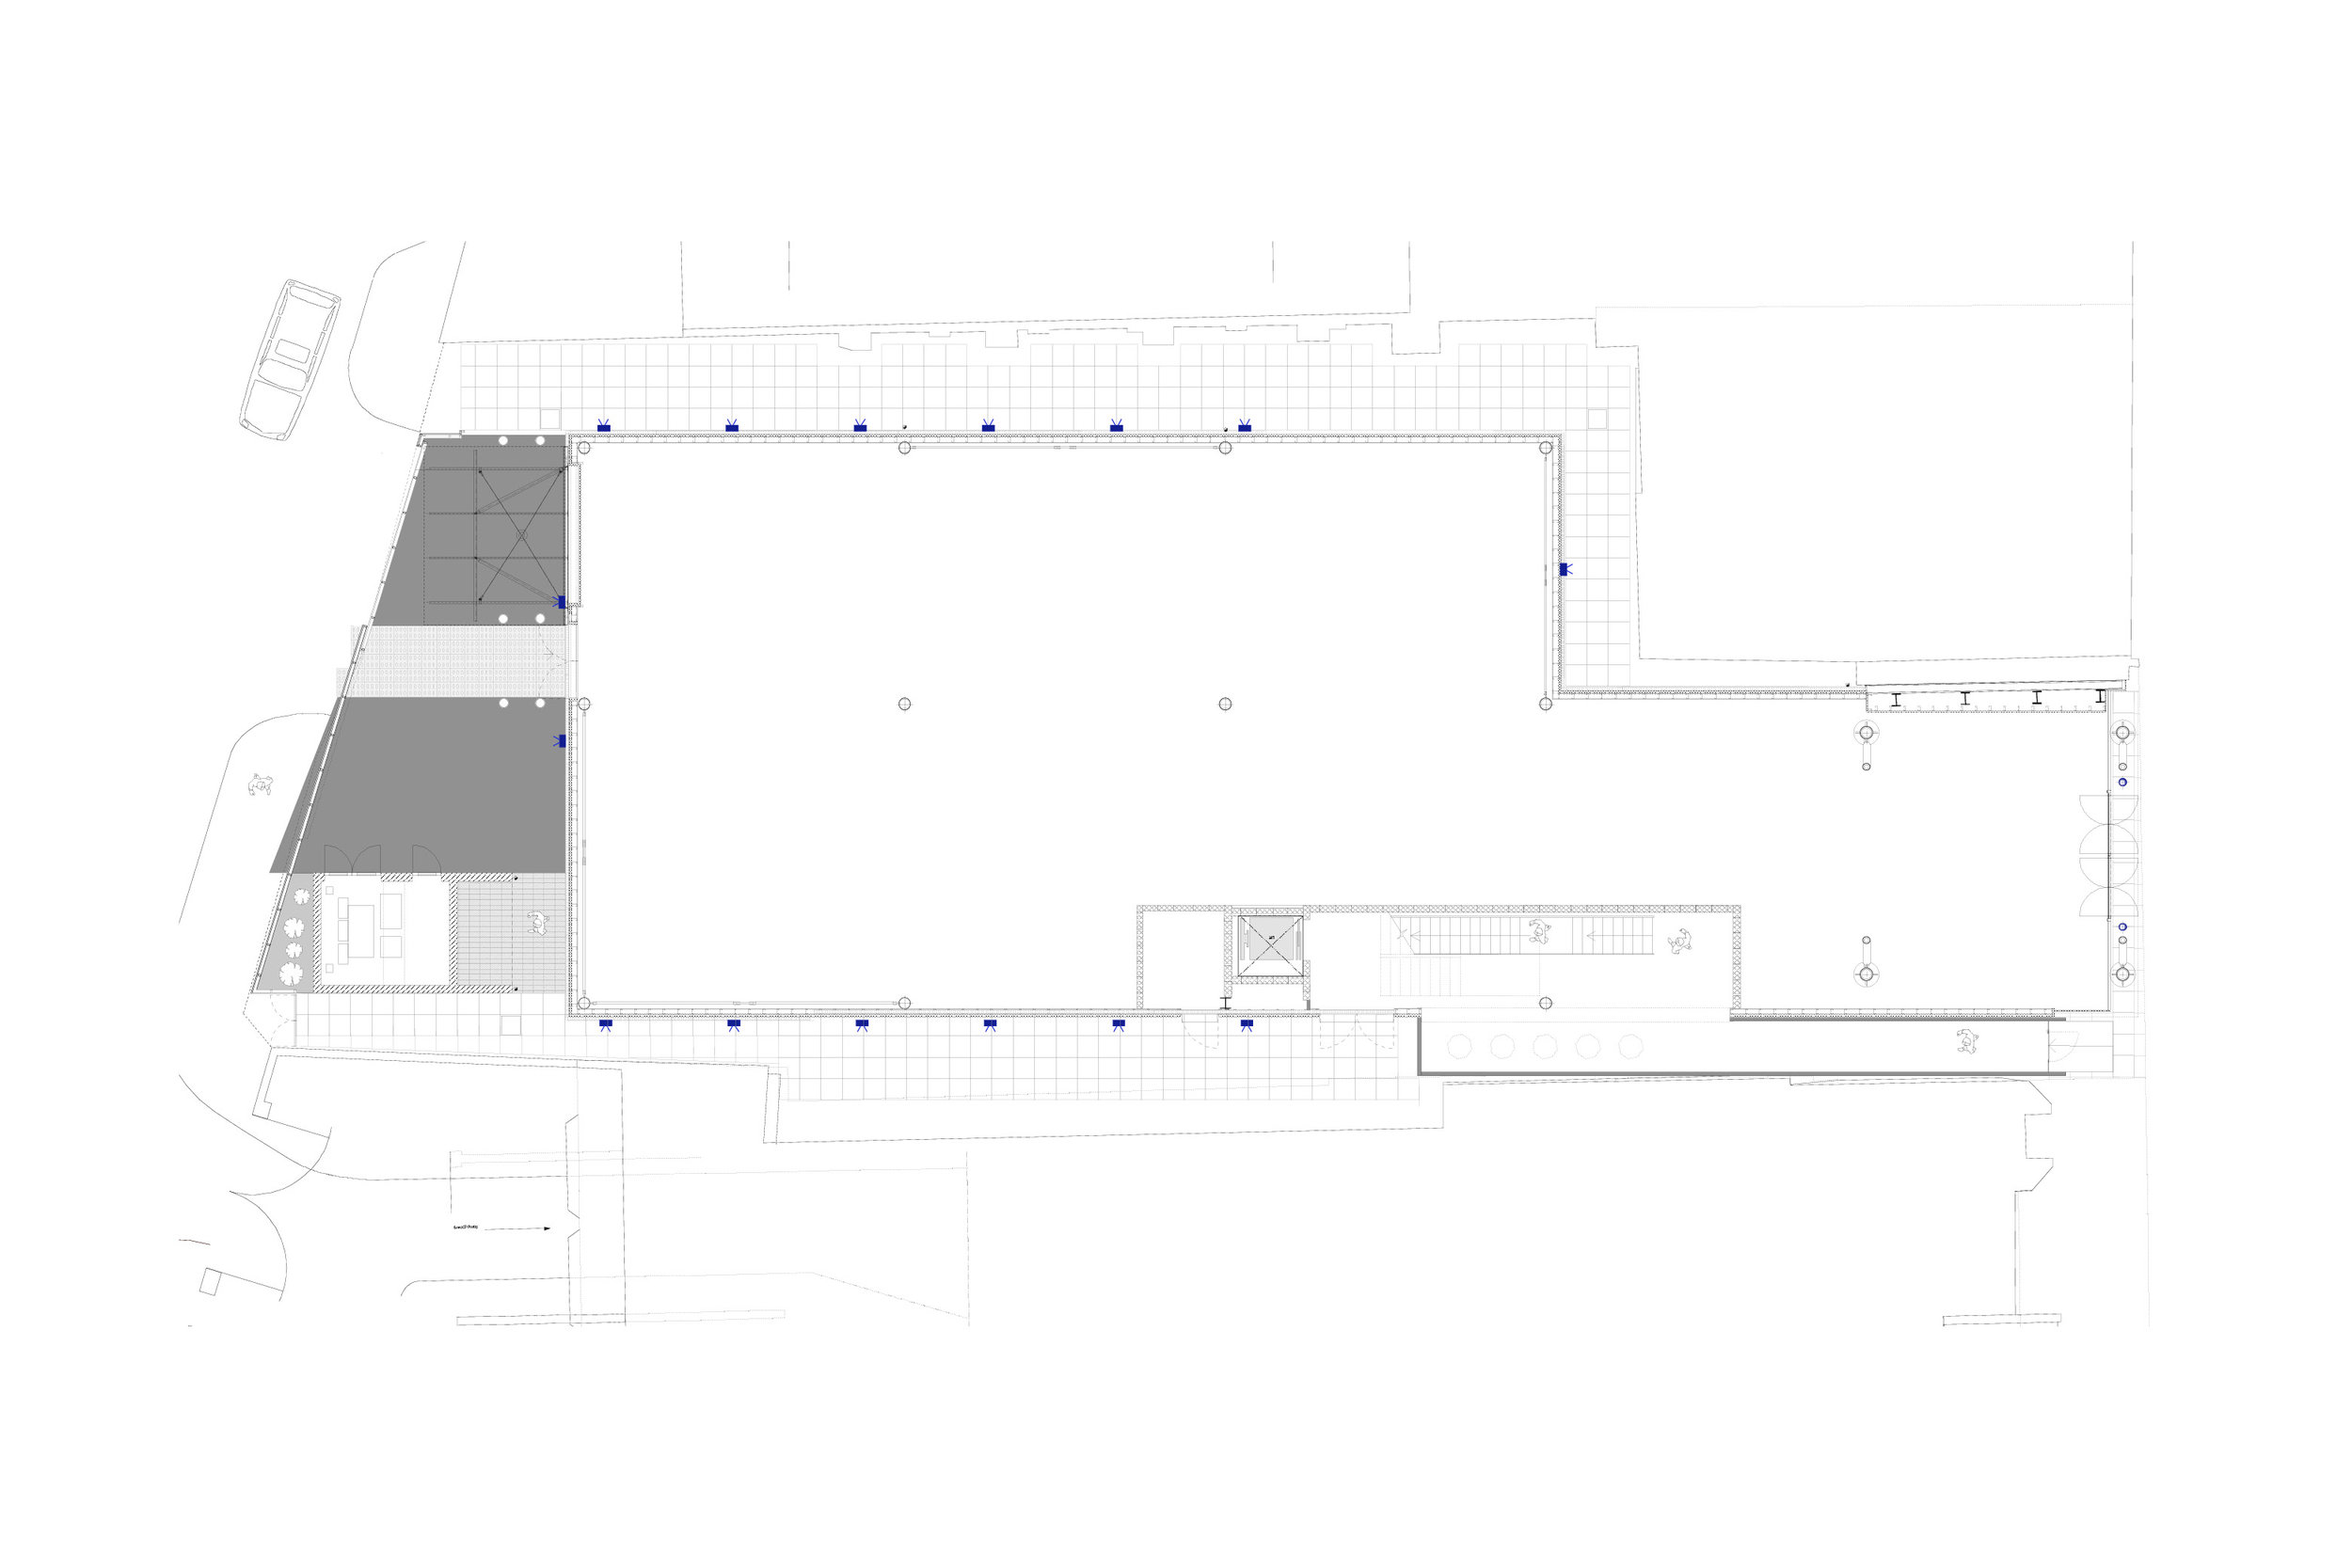 Floor Plan for Demountable Offices Designed by Mowat and Company